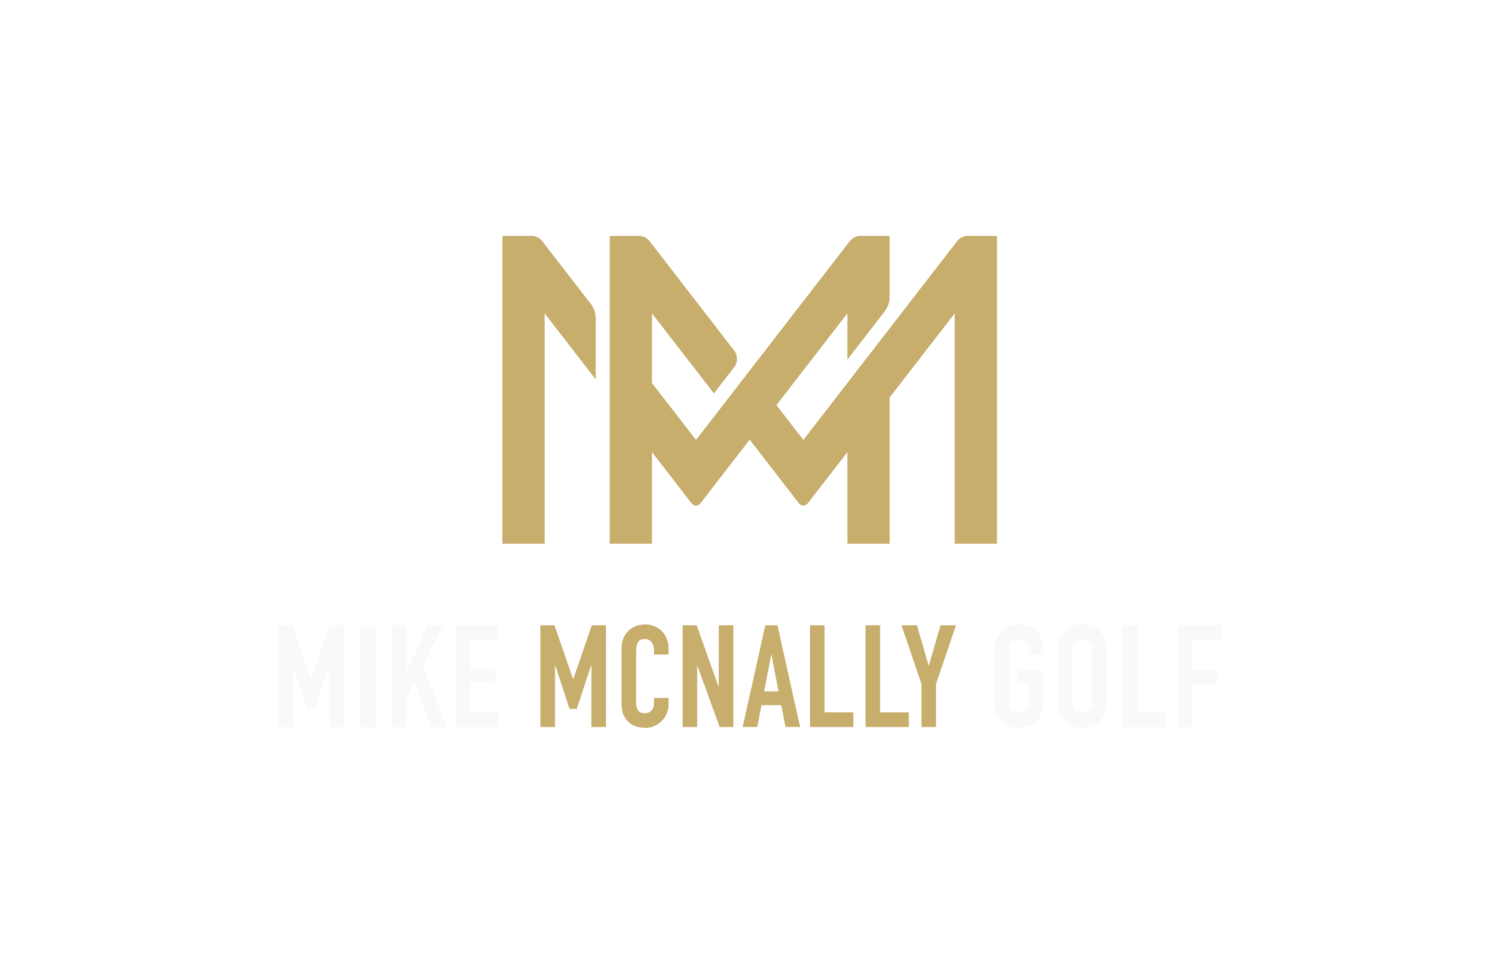 Mike McNally Golf